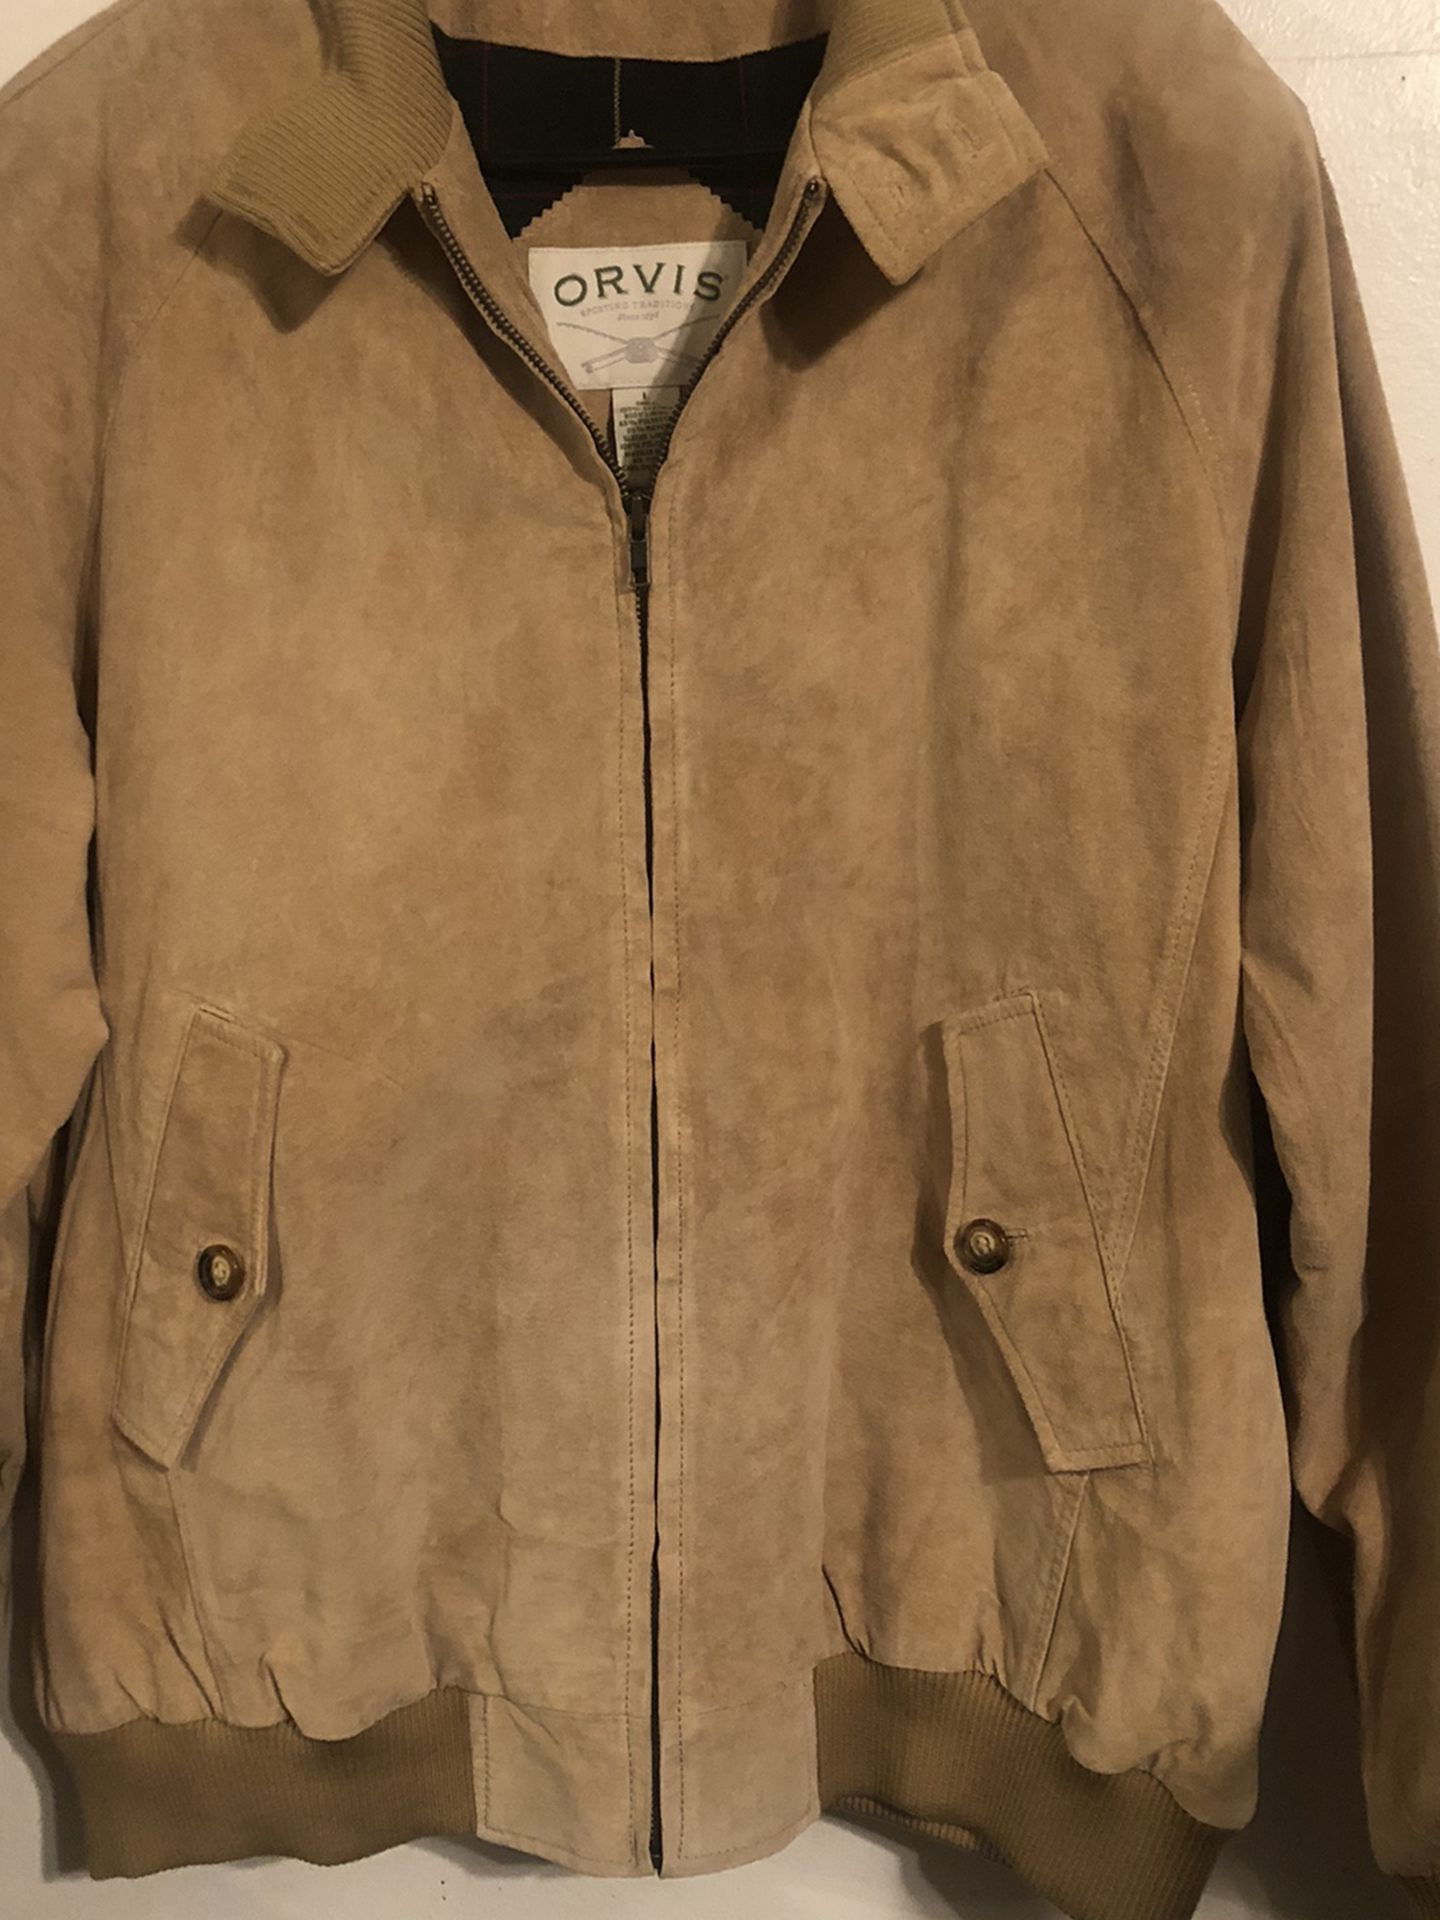 Orvis Brown Leather/Suede Men's Jacket Size L